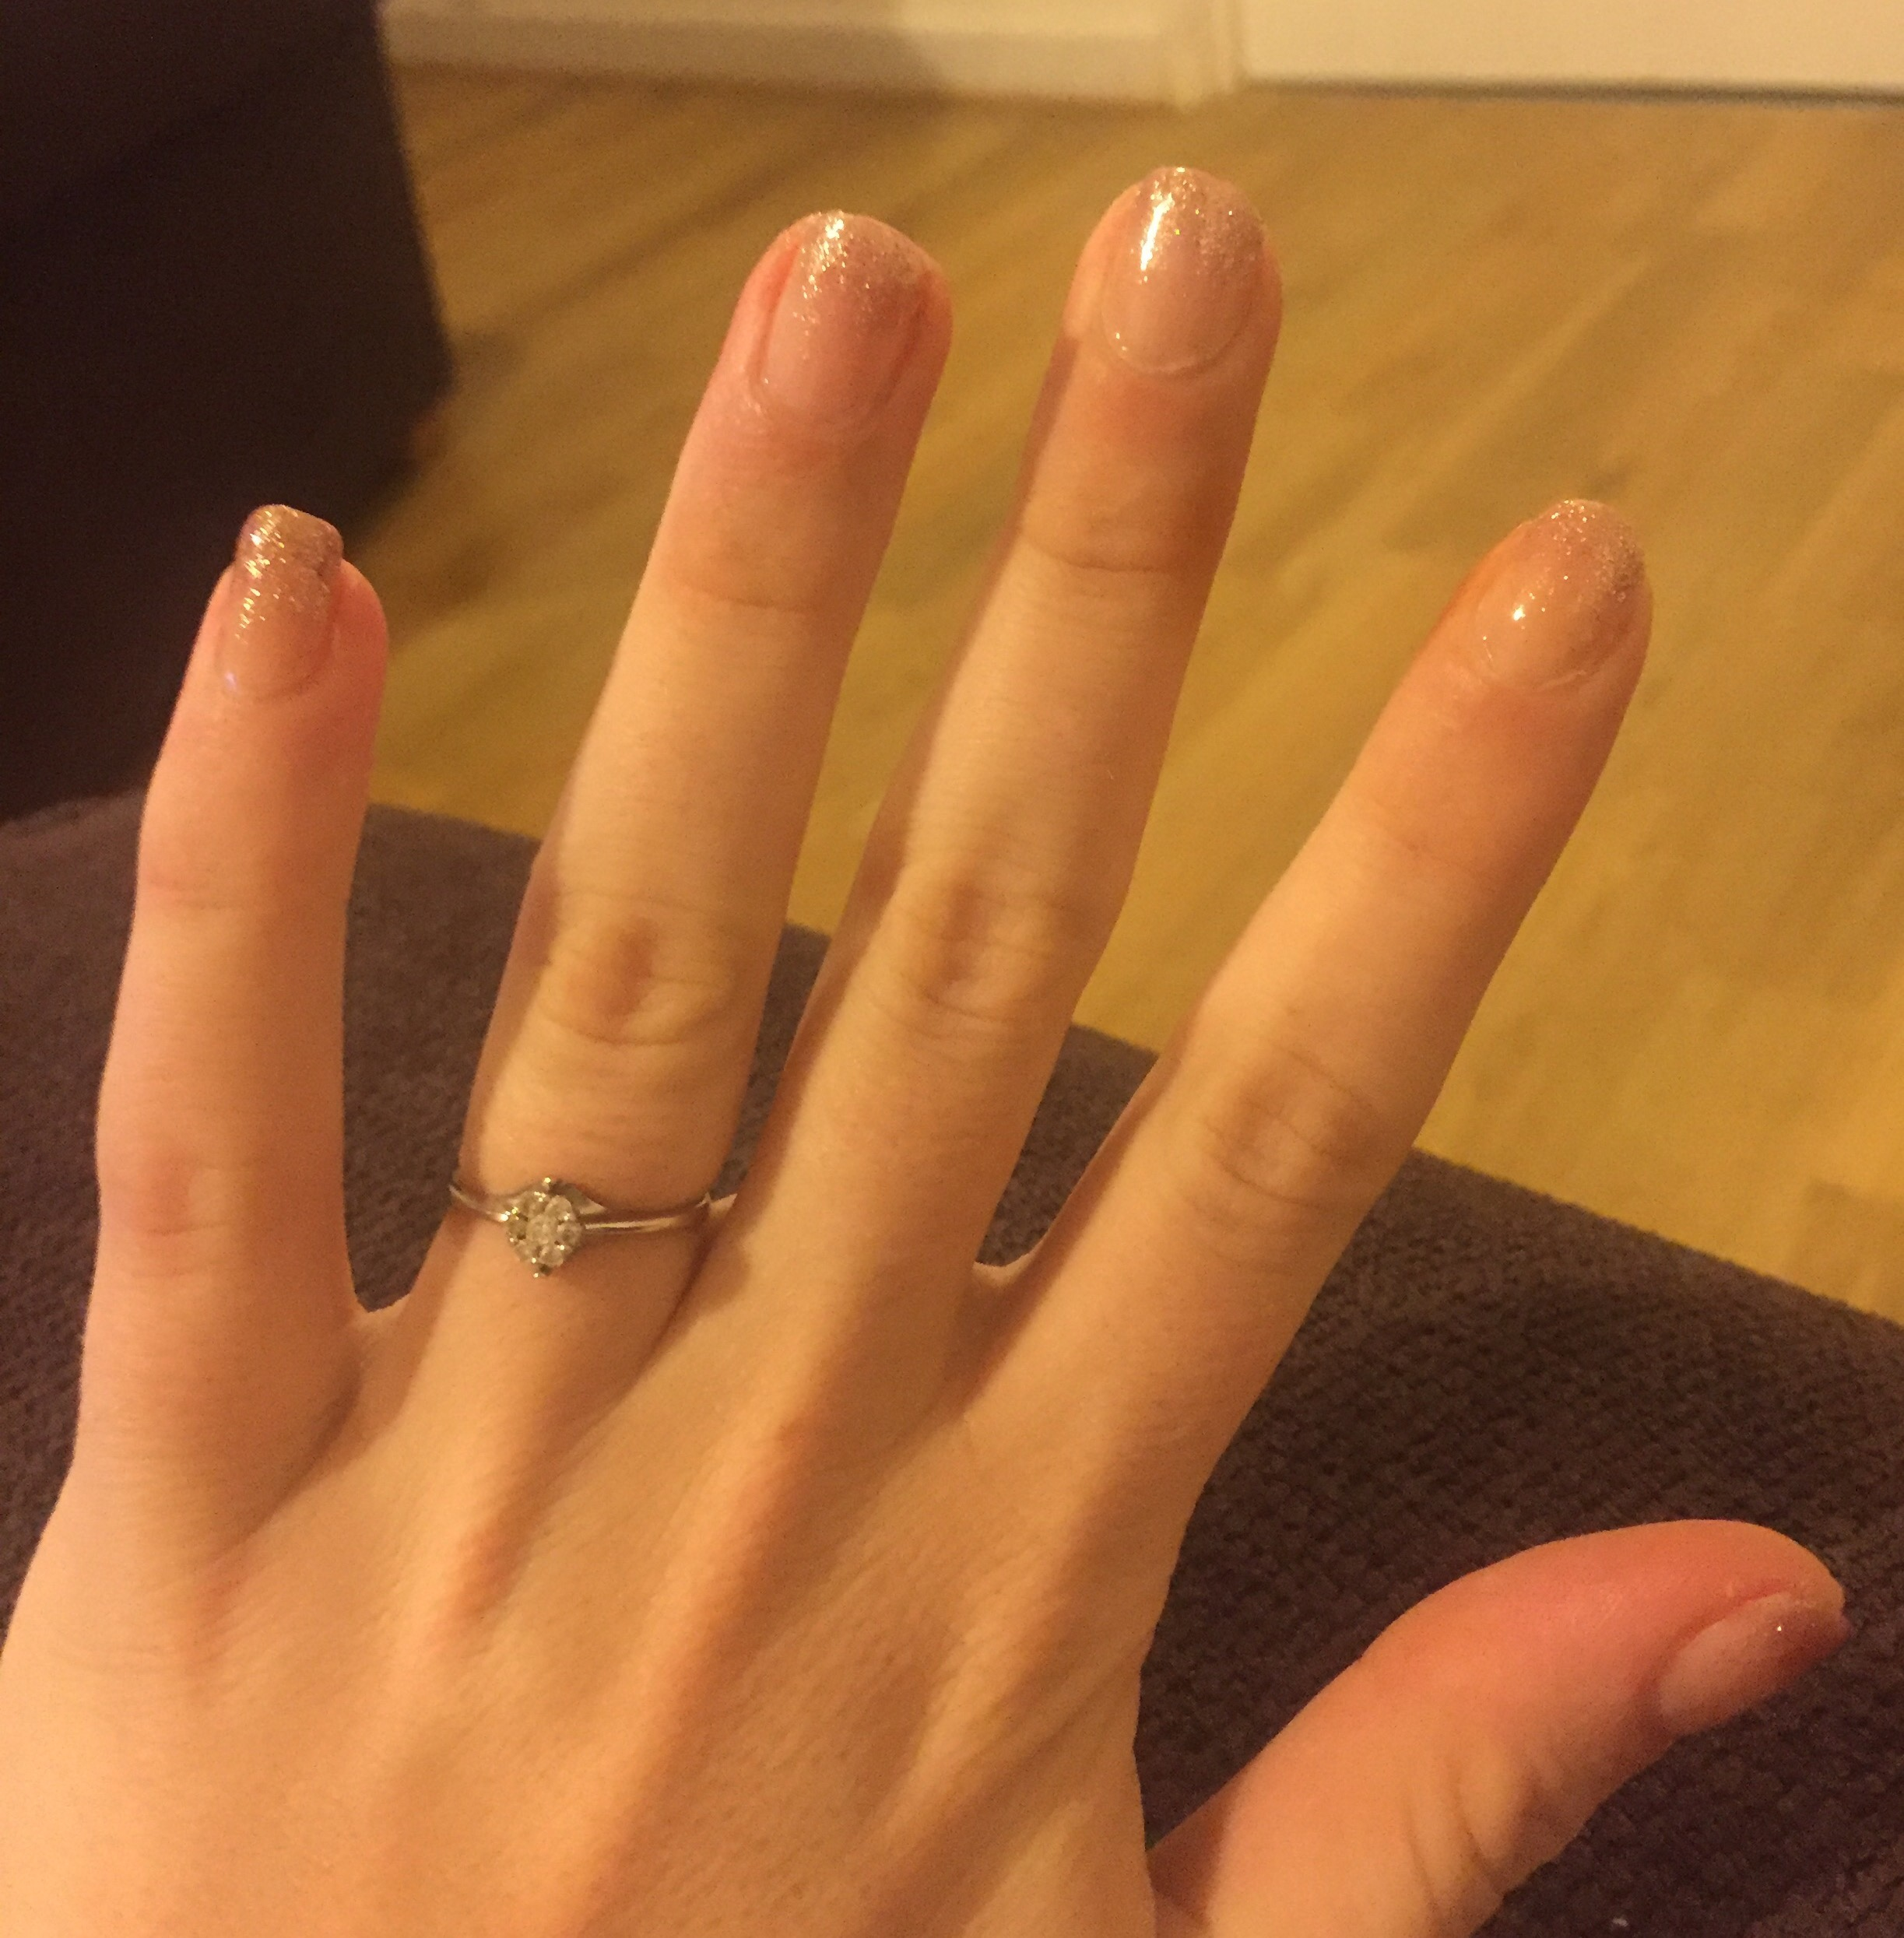 At home gel manicures